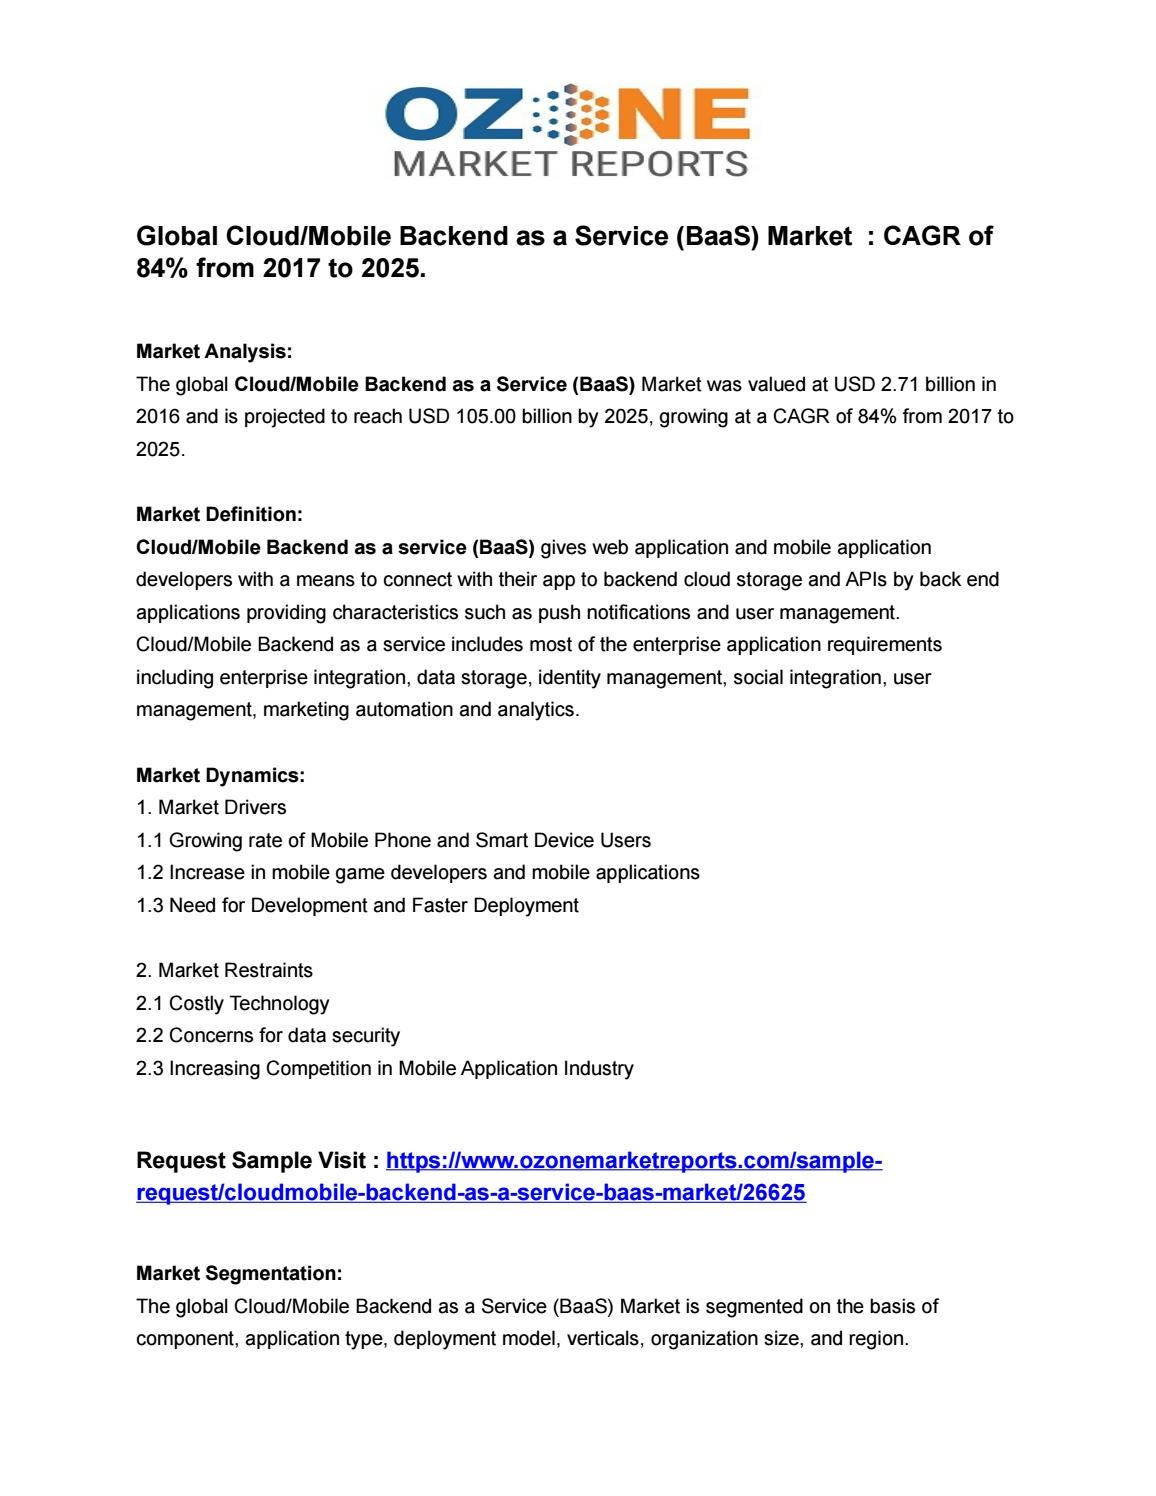 Global Cloud/Mobile Backend as a Service (BaaS) Market : CAGR of 84